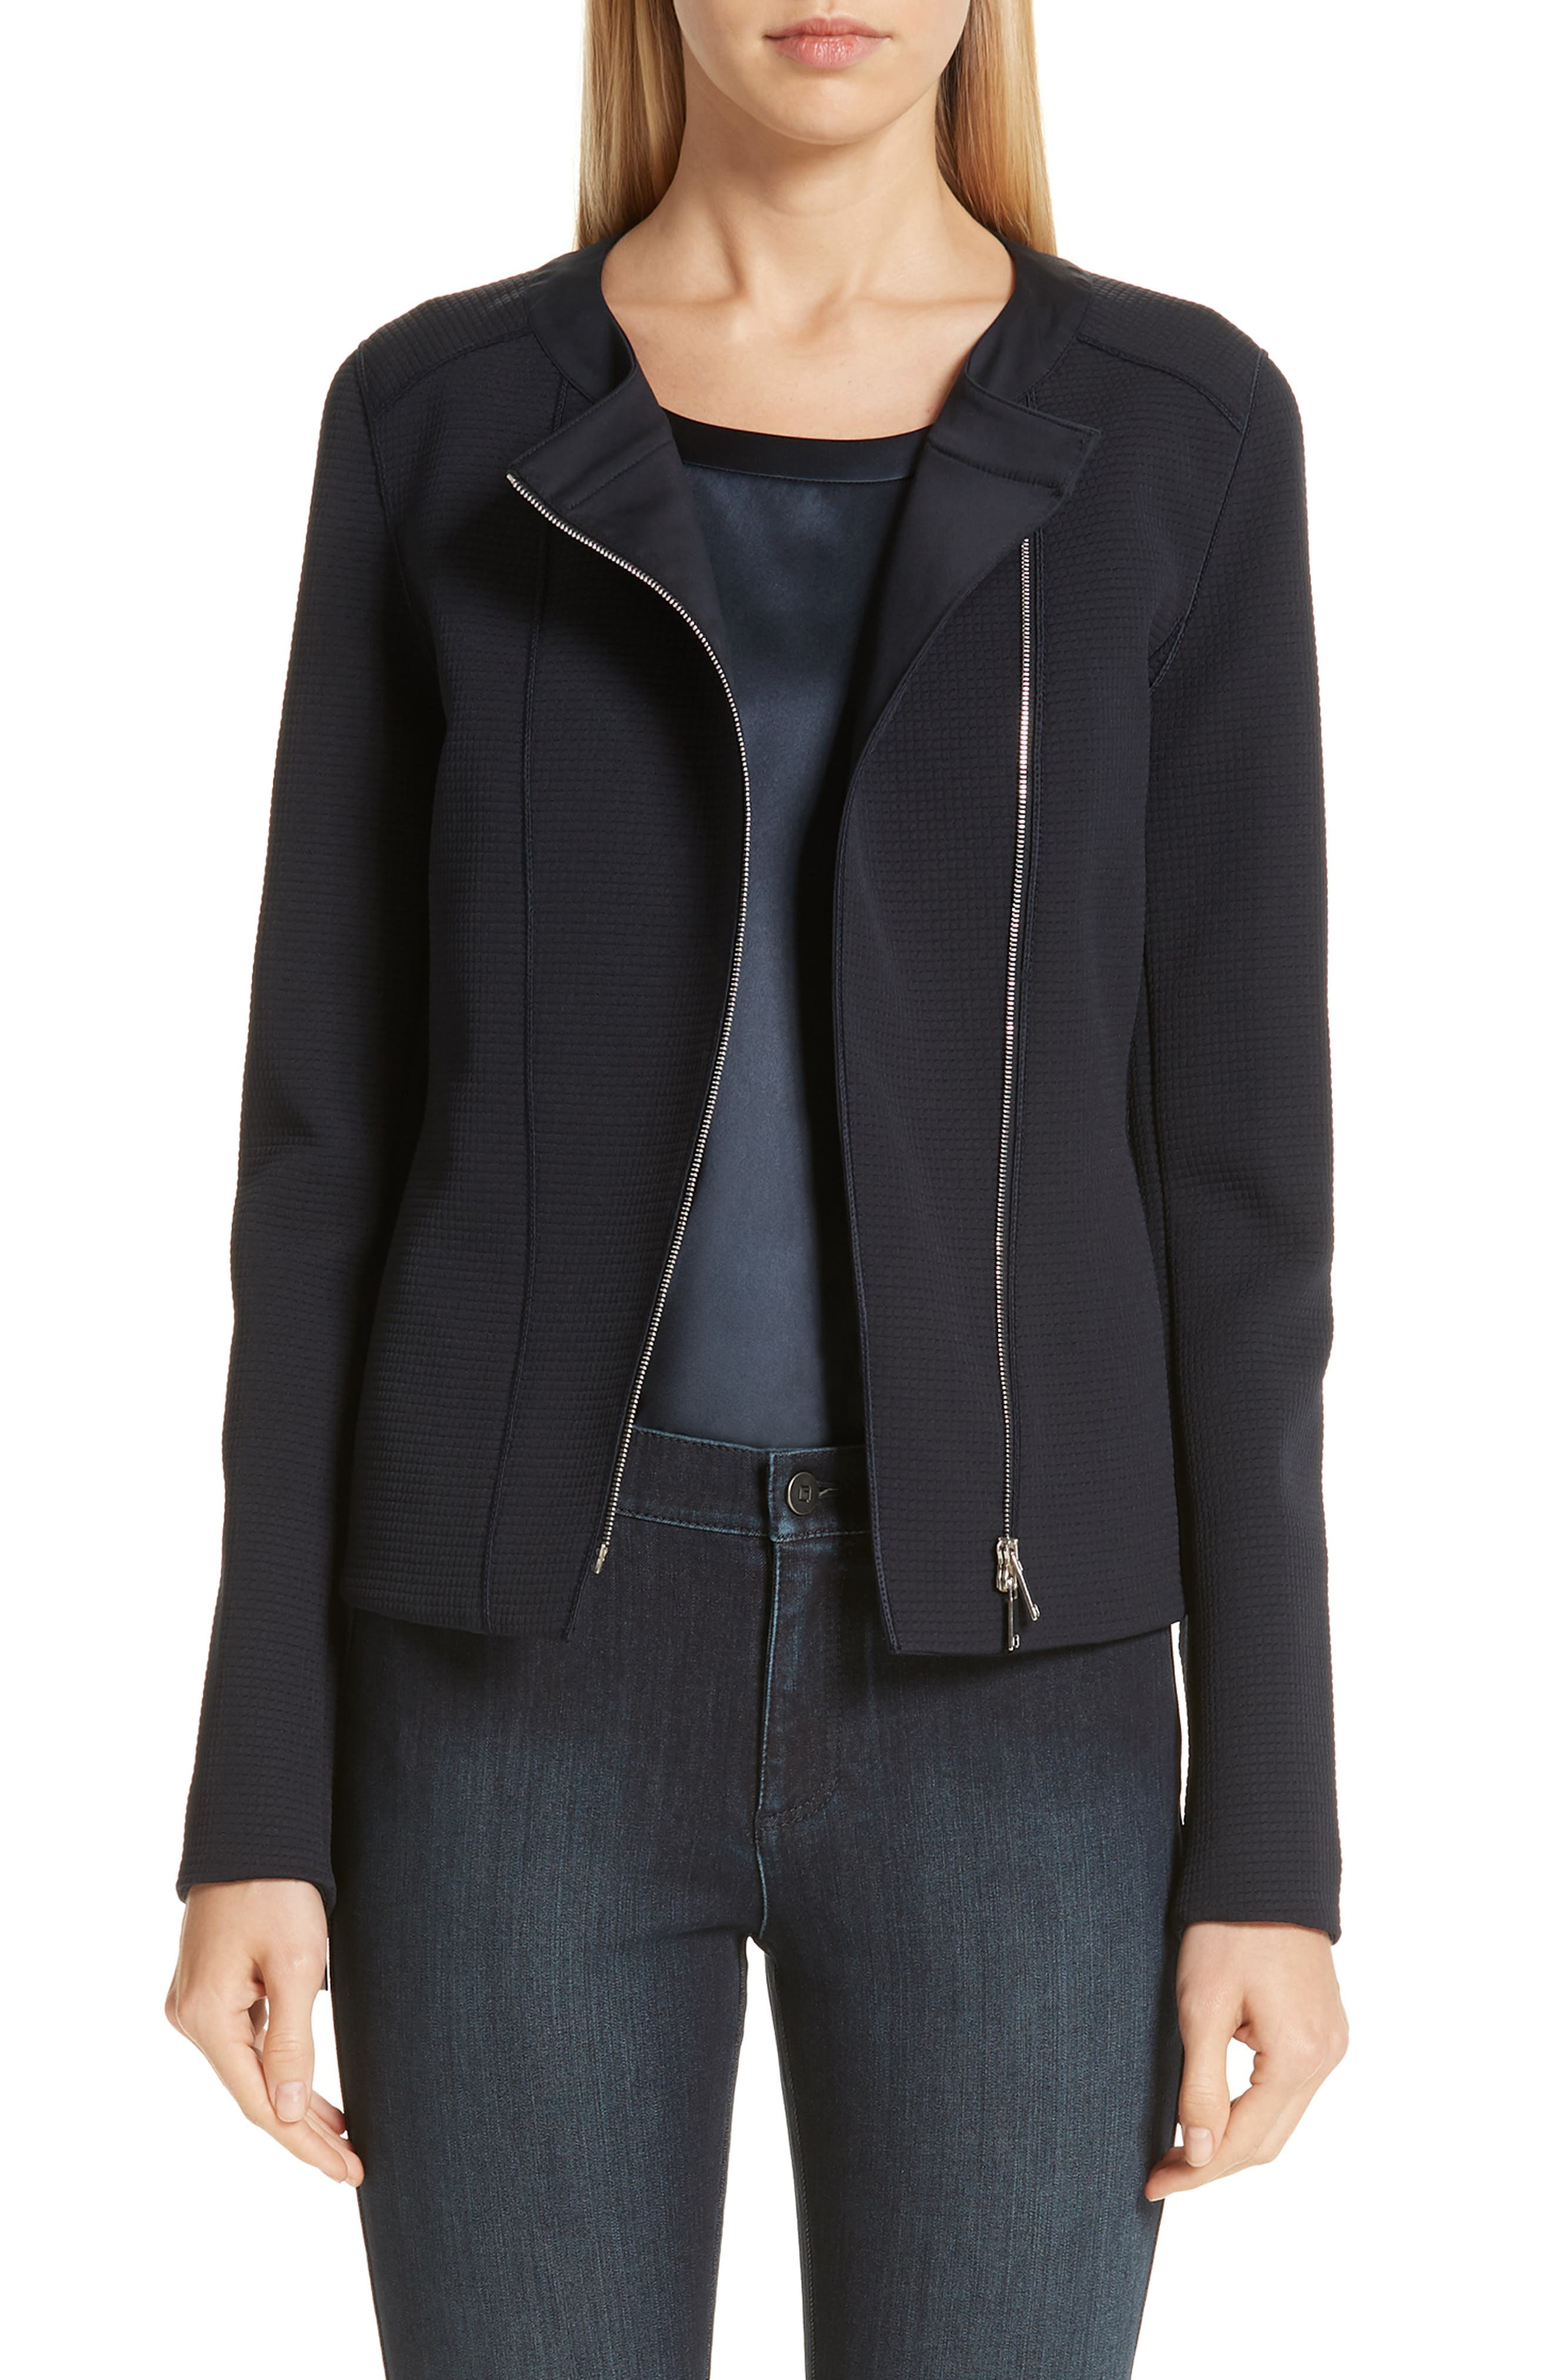 LAFAYETTE 148 NEW YORK Trista Moto Jacket, Main, color, INK